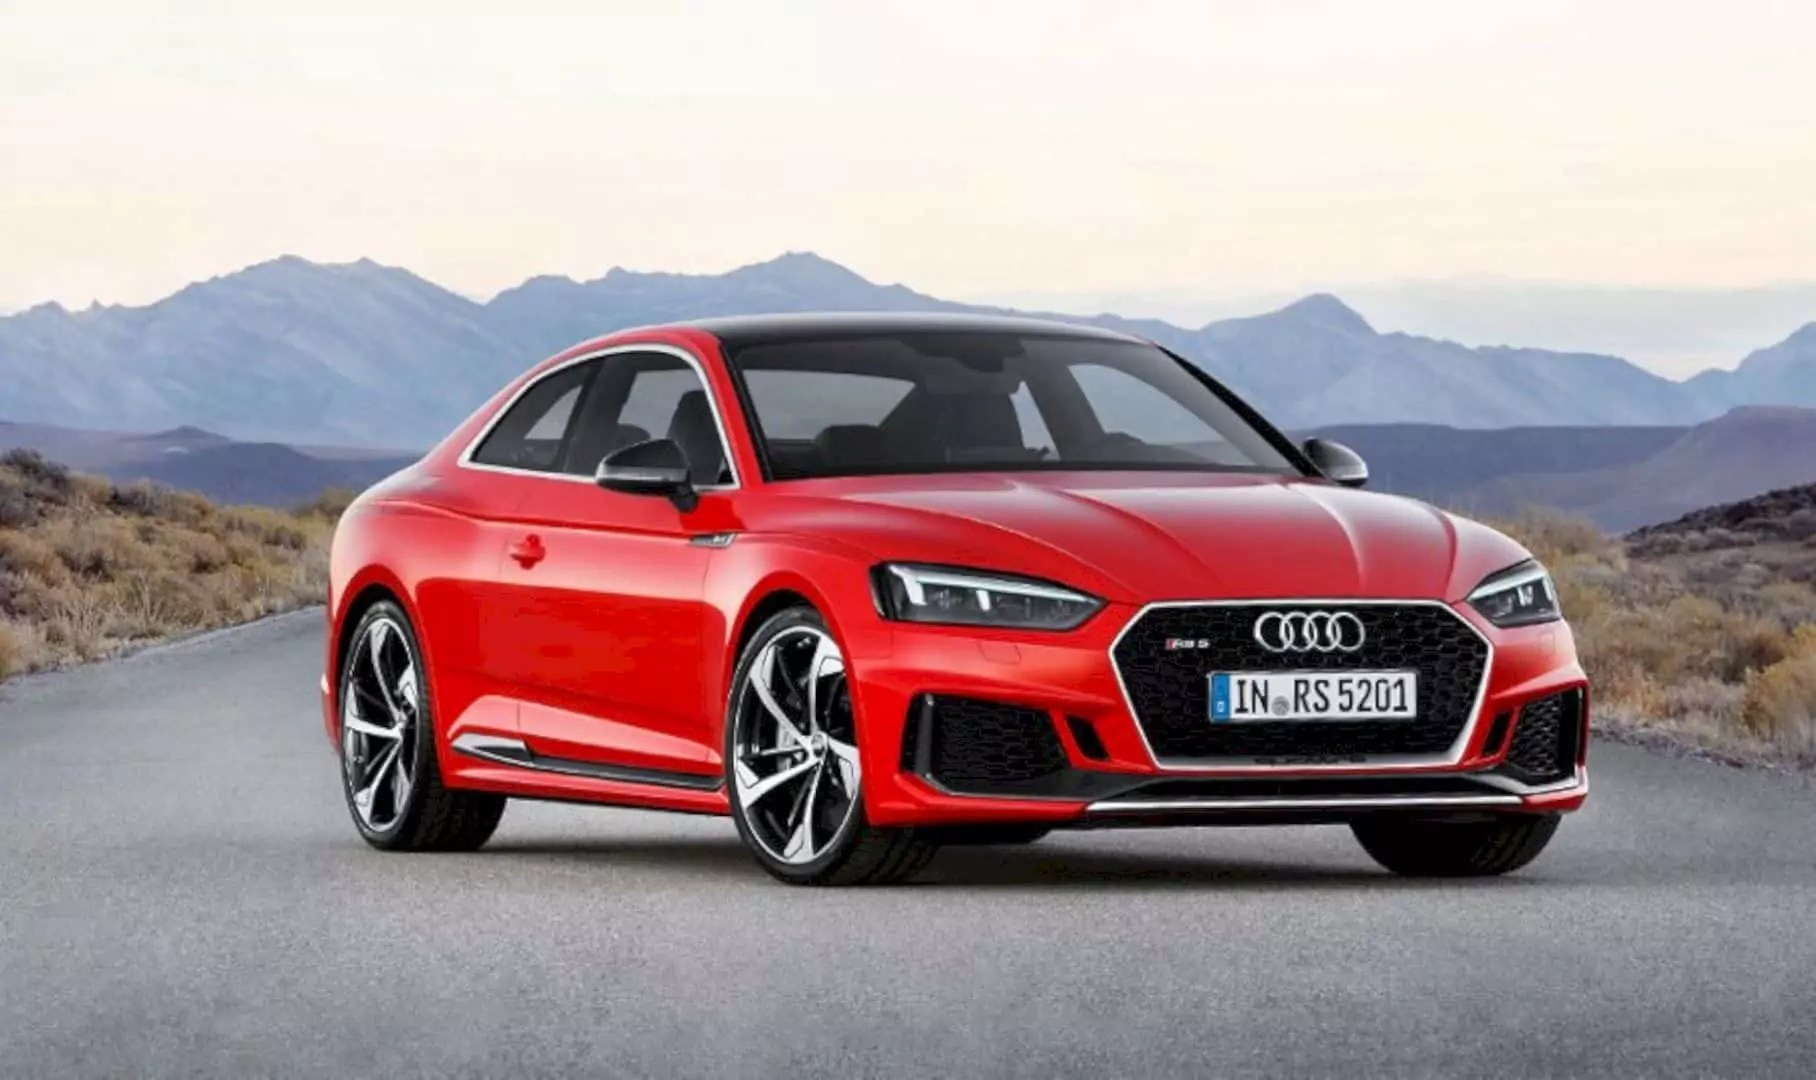 2018 Audi RS5 Coupe: Break the Mold!